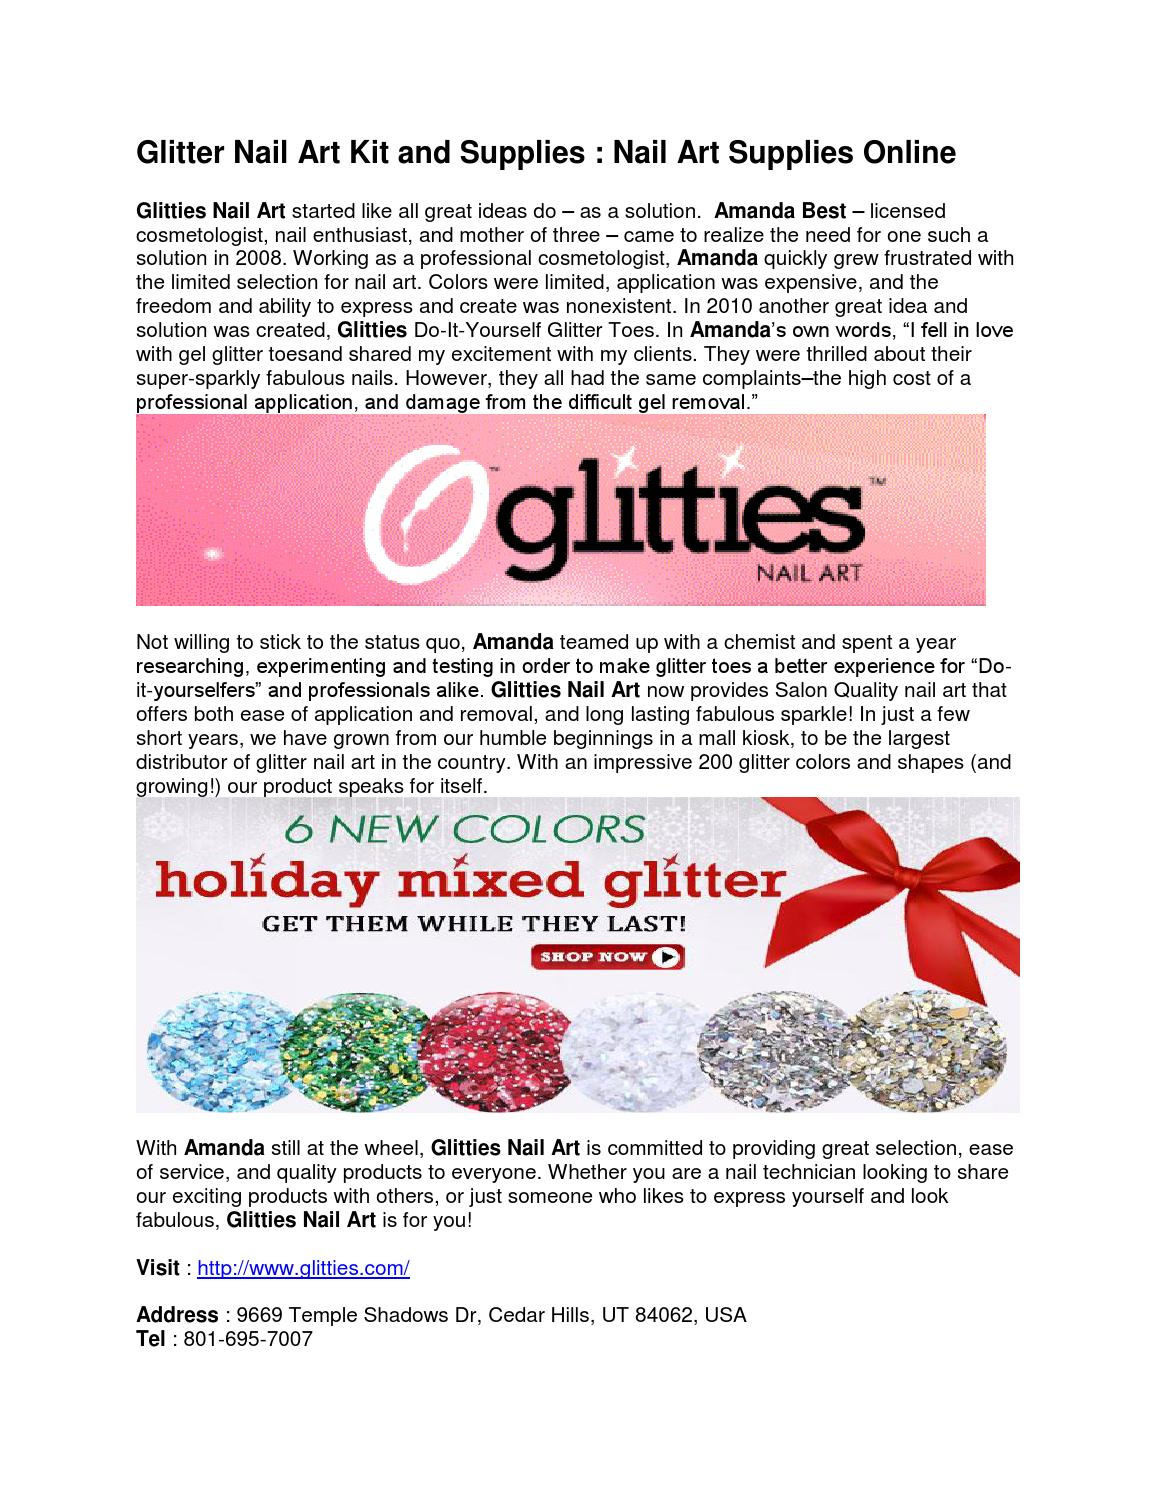 Glitter Nail Art Kit And Supplies Nail Art Supplies Online By